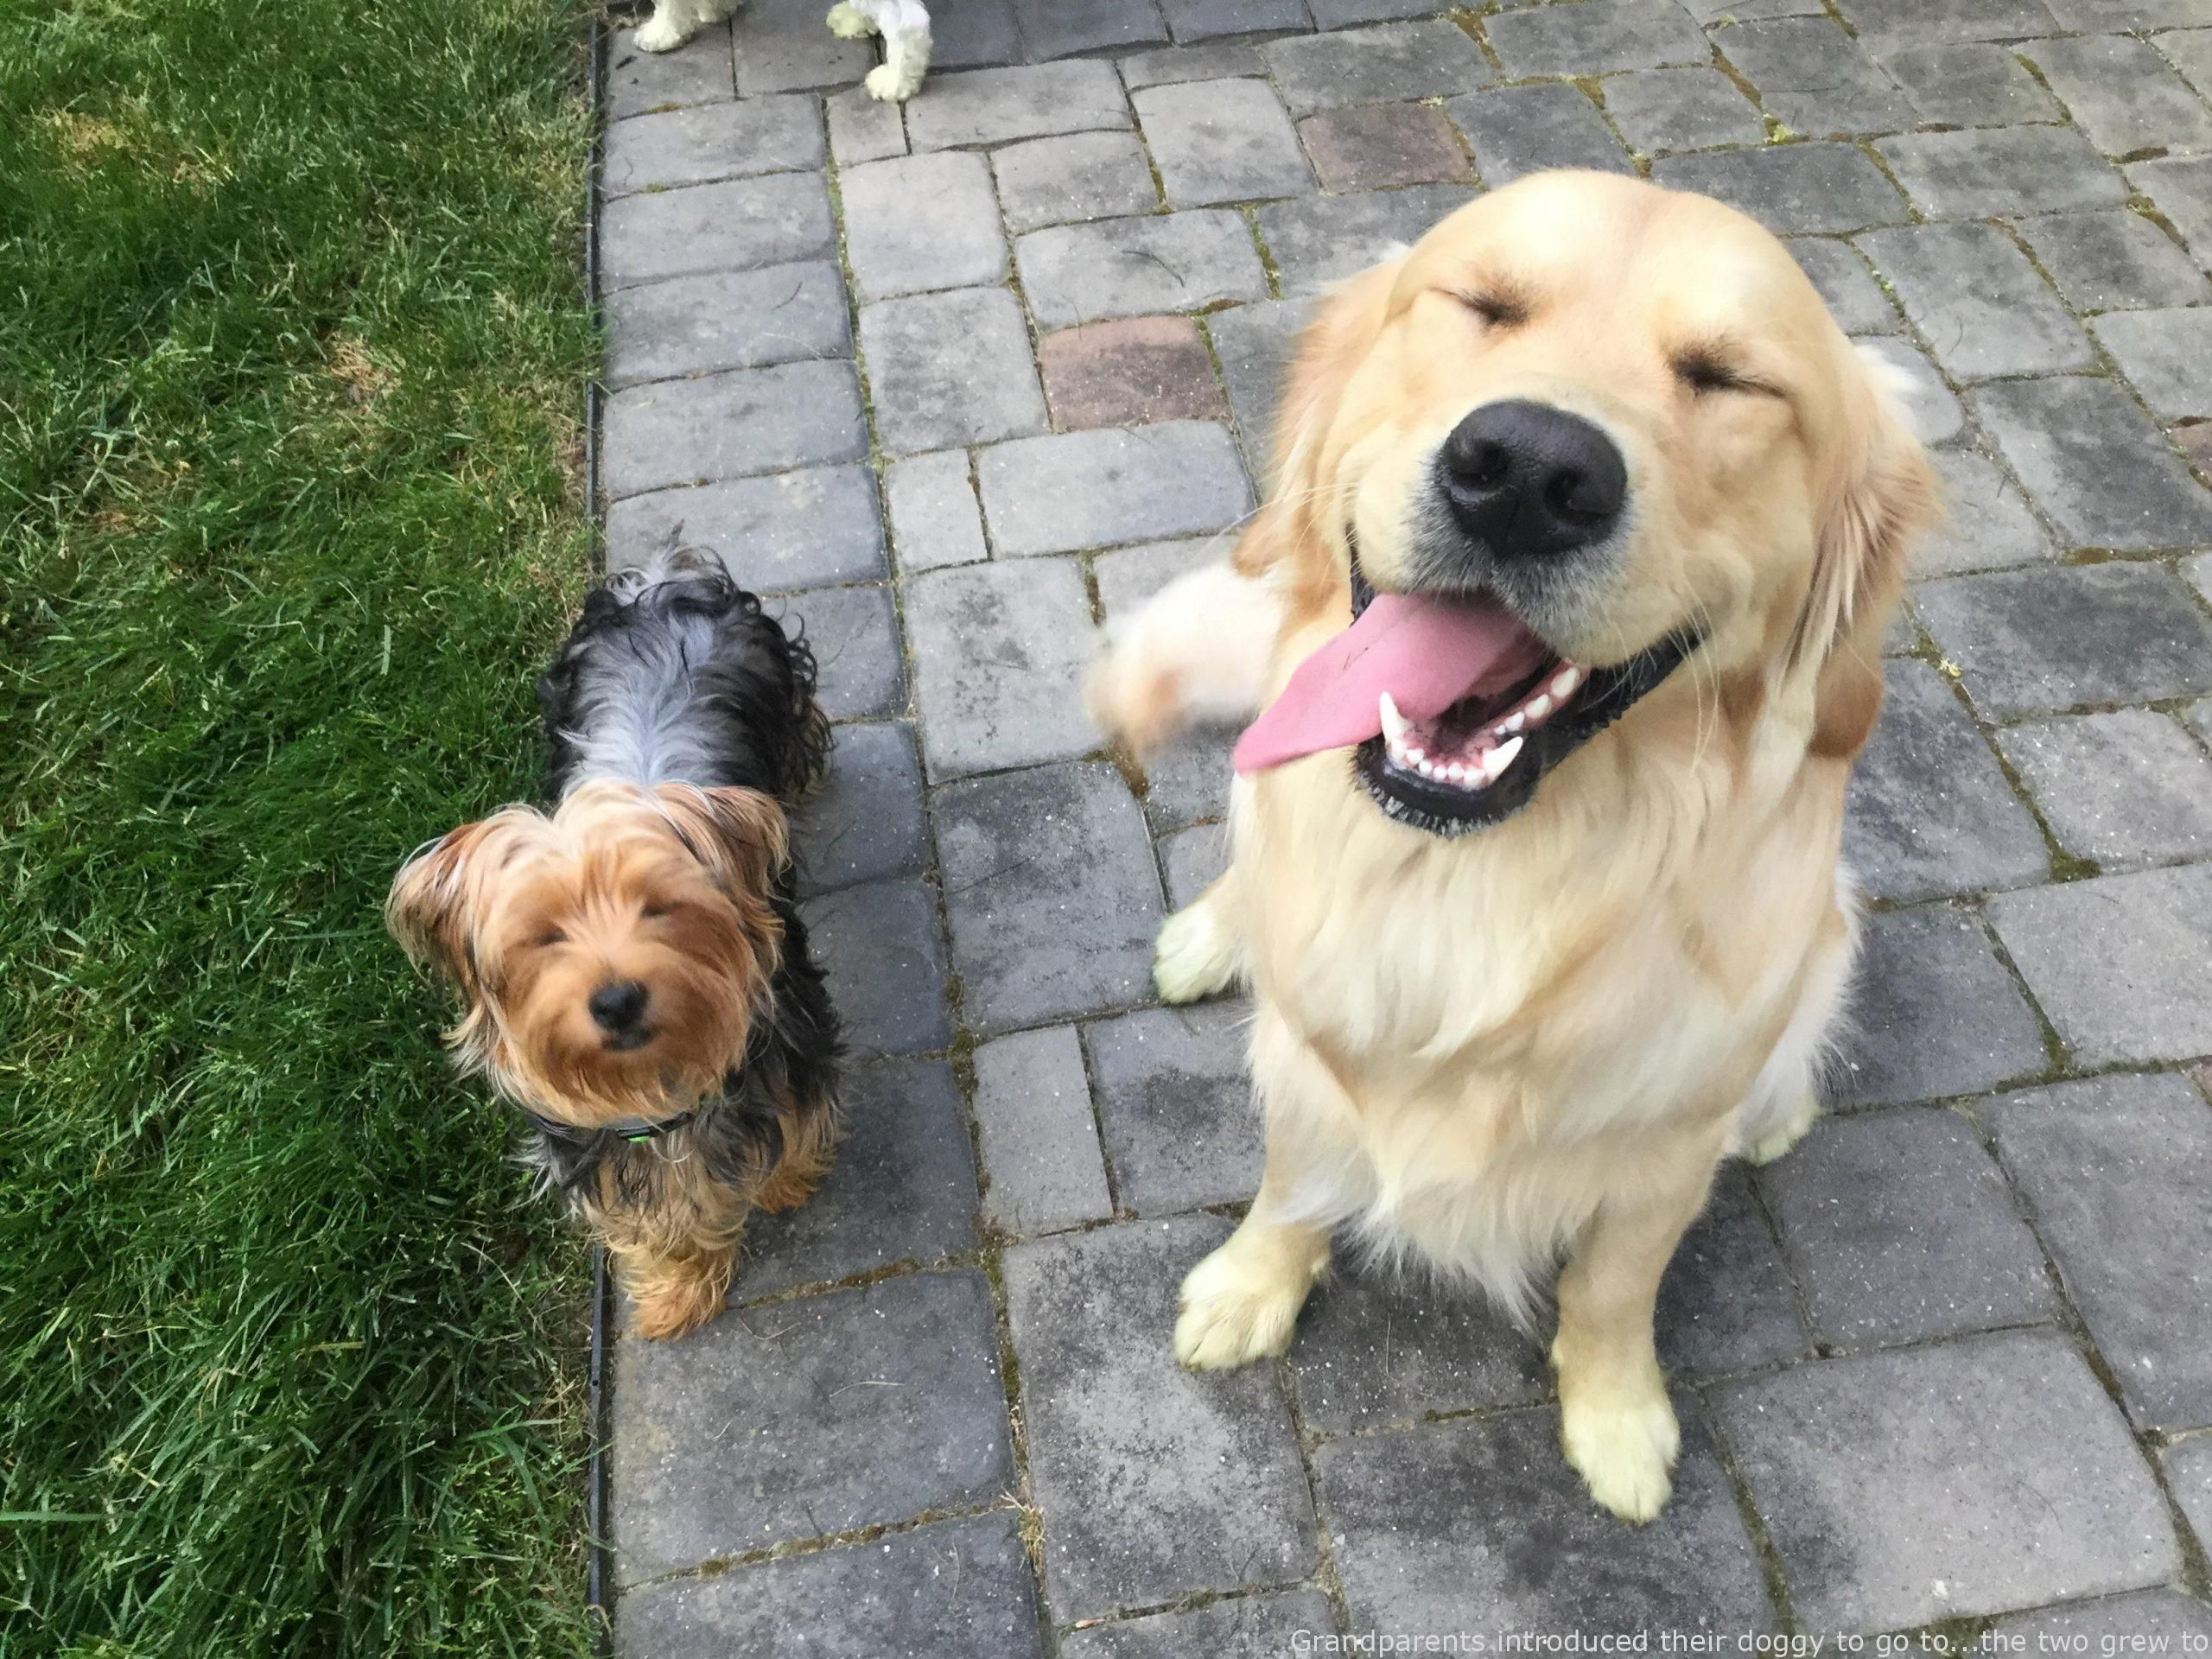 Grandparents brought their dog to pay a visit tothe two became speedy close  Grandparents brought their dog to pay a visit tothe two became speedy close friends  beautif...